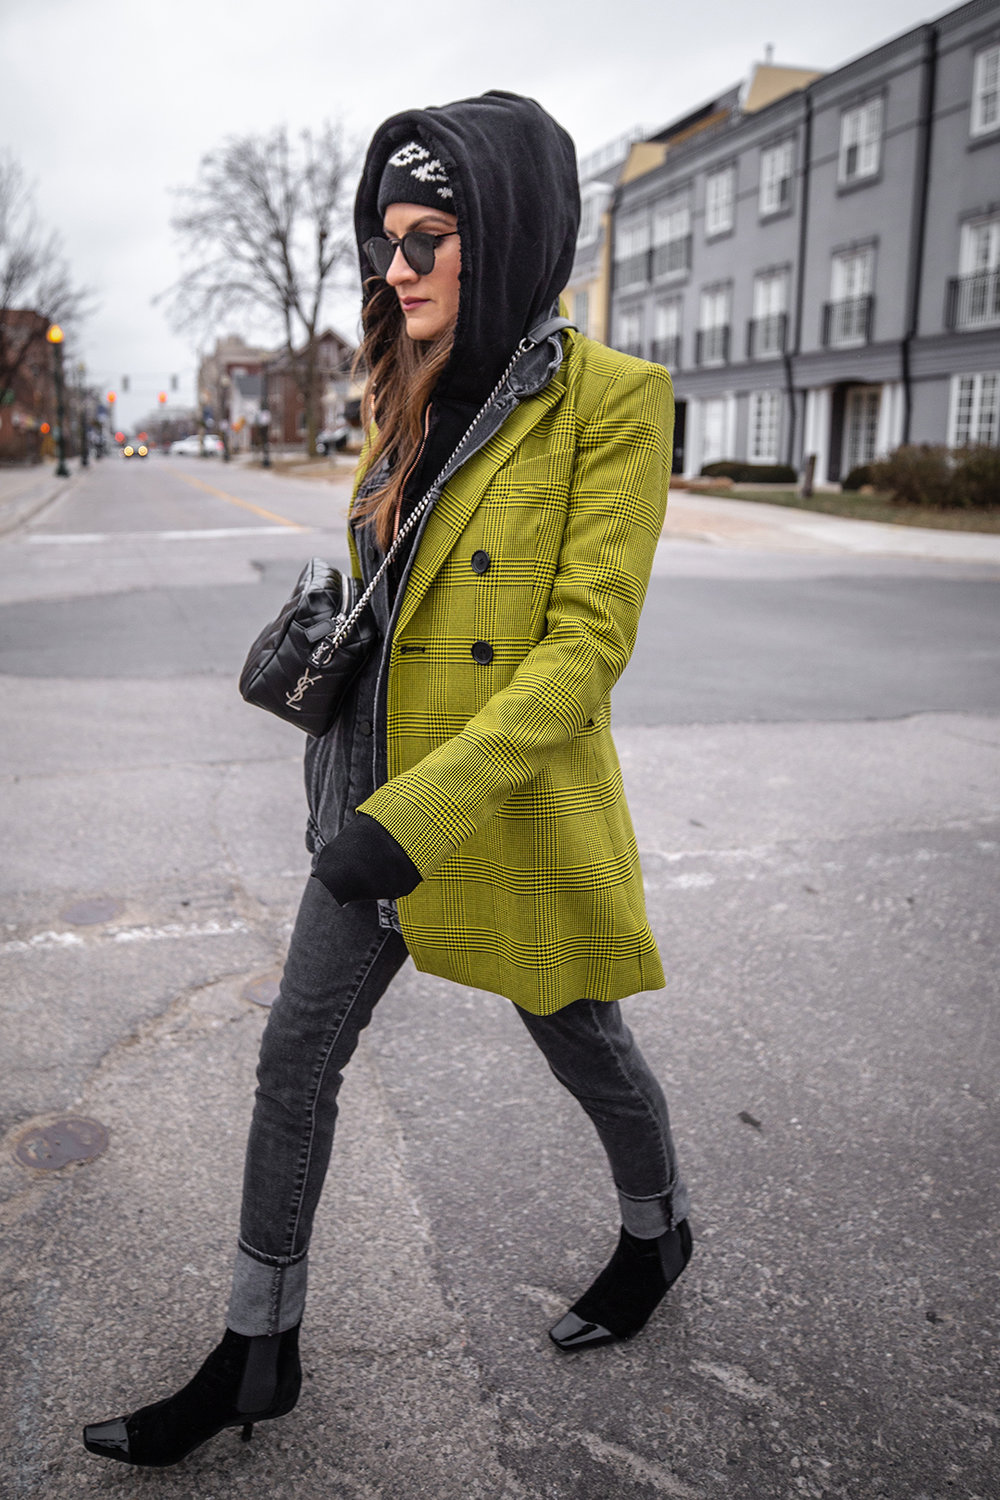 Nathalie Martin, Robert Rodriguez yellow plaid houndstooth blazer, Balenciaga logo beanie hat, Loewe velvet patent leather boots, grey jeans, Alexander Wang denim vest, Frank & Eileen hoodie, Saint Laurent LouLou bag, streetstyle woahstyle.com_6097.jpg